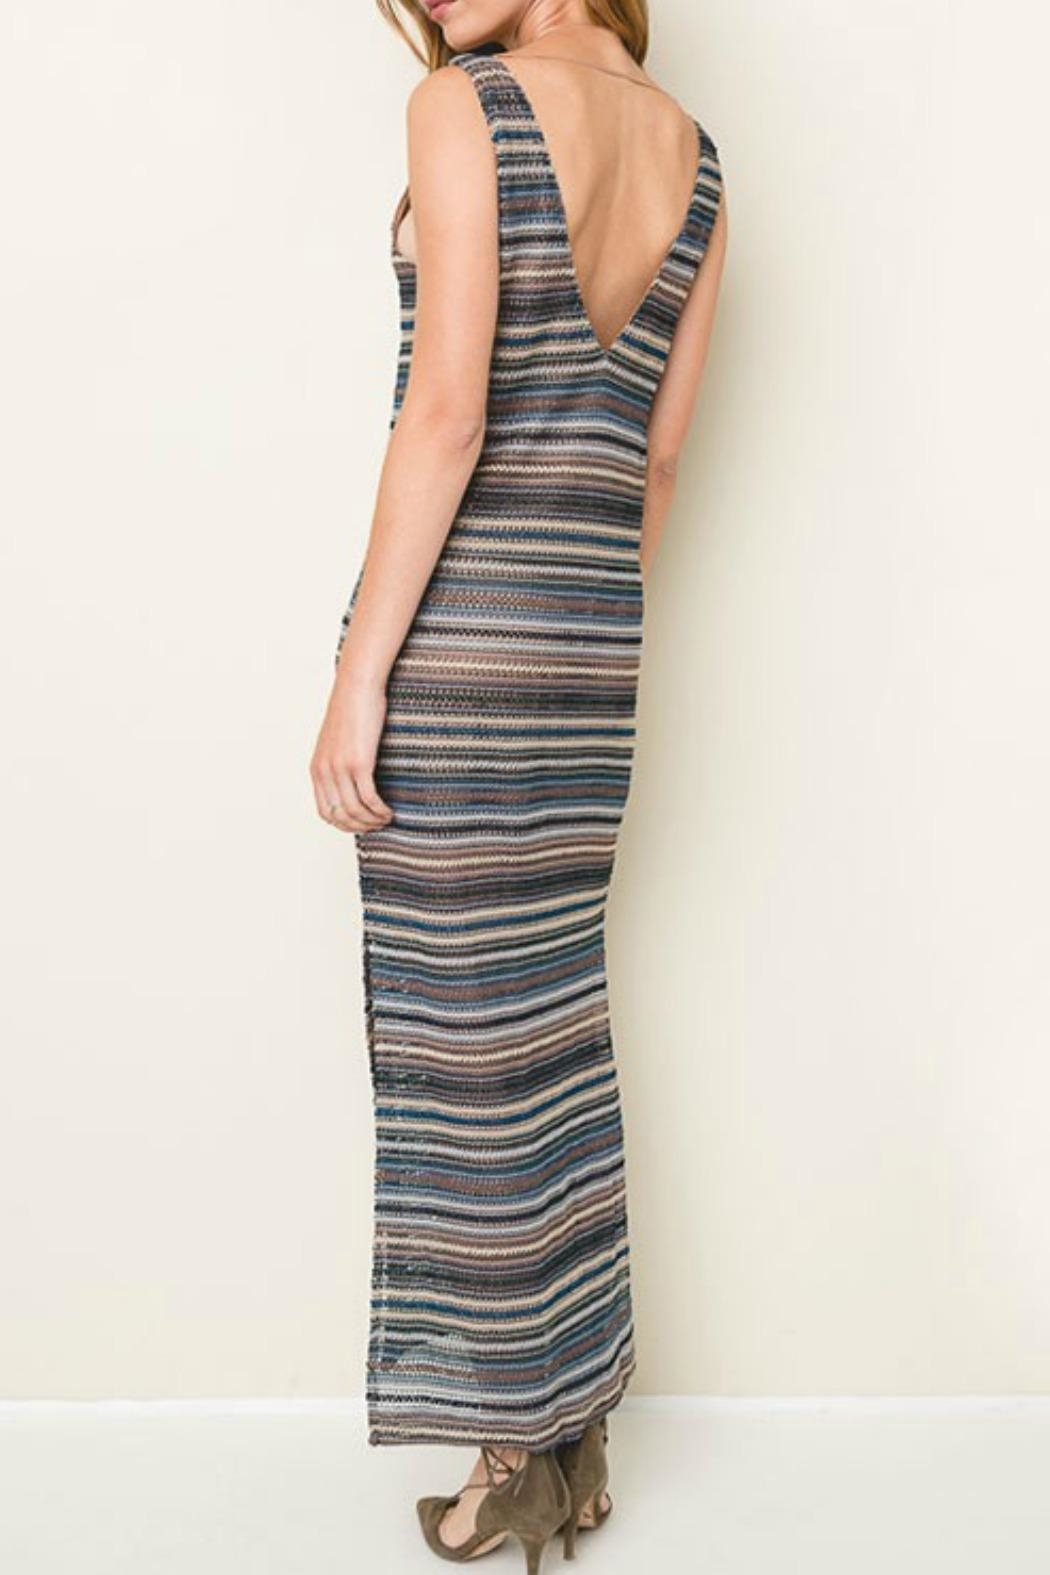 Hayden Los Angeles Sail Away Knit-Maxi - Side Cropped Image